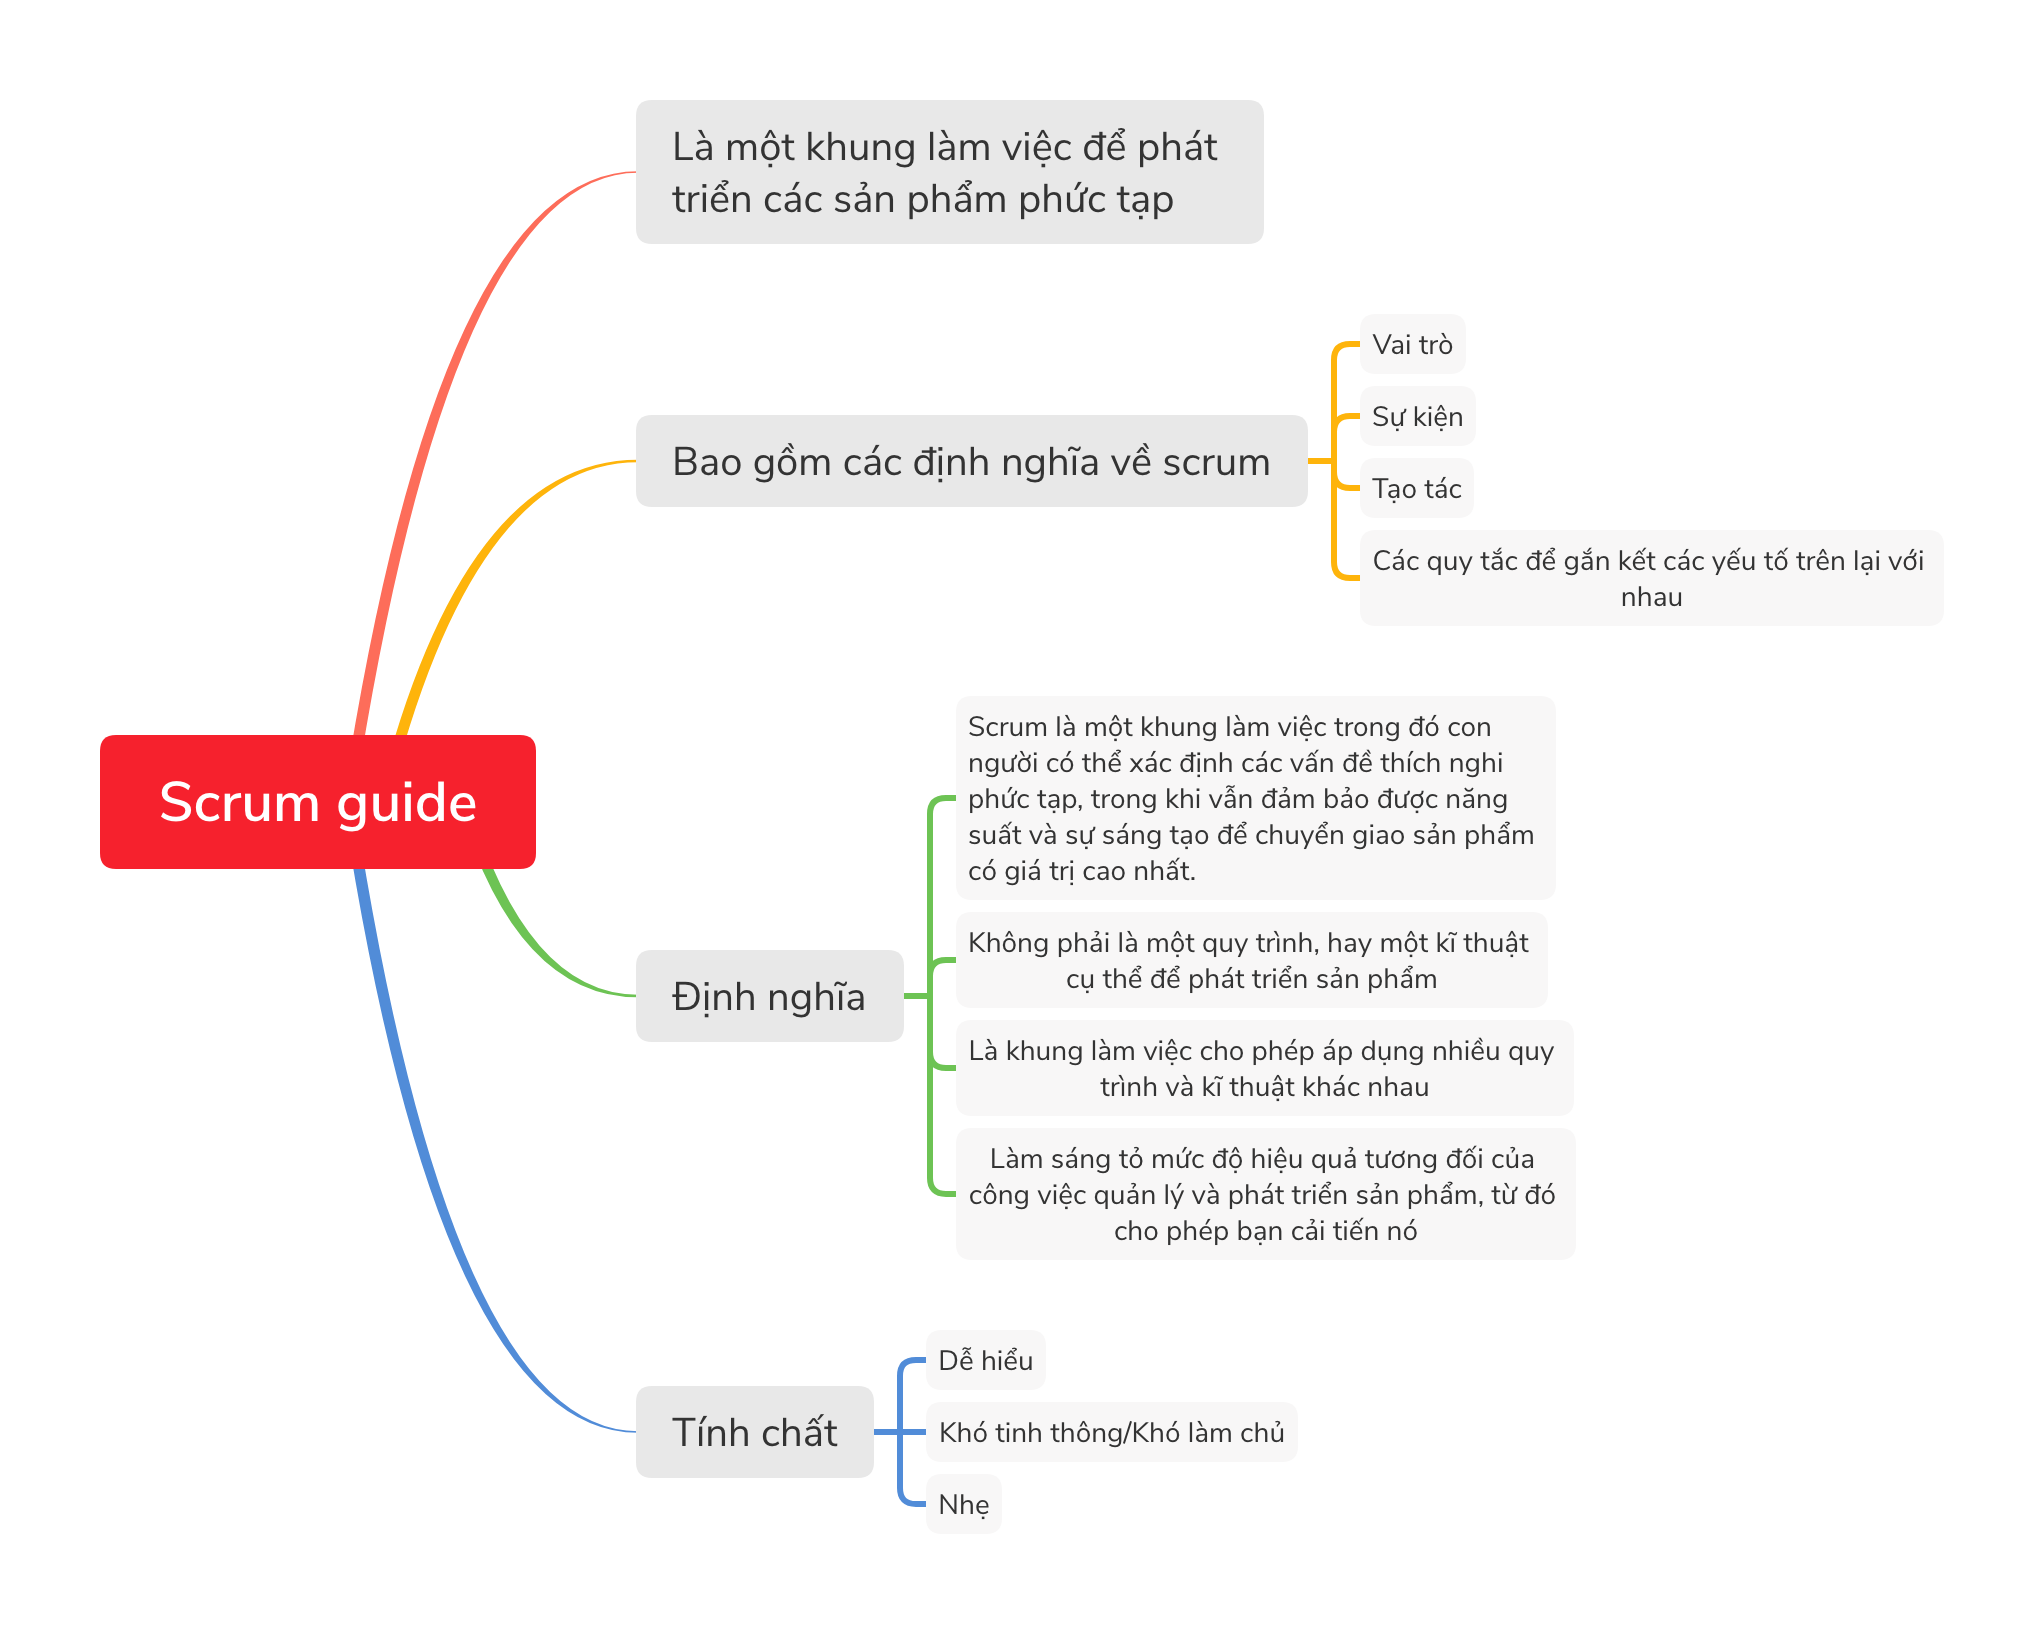 Scrum guide 1